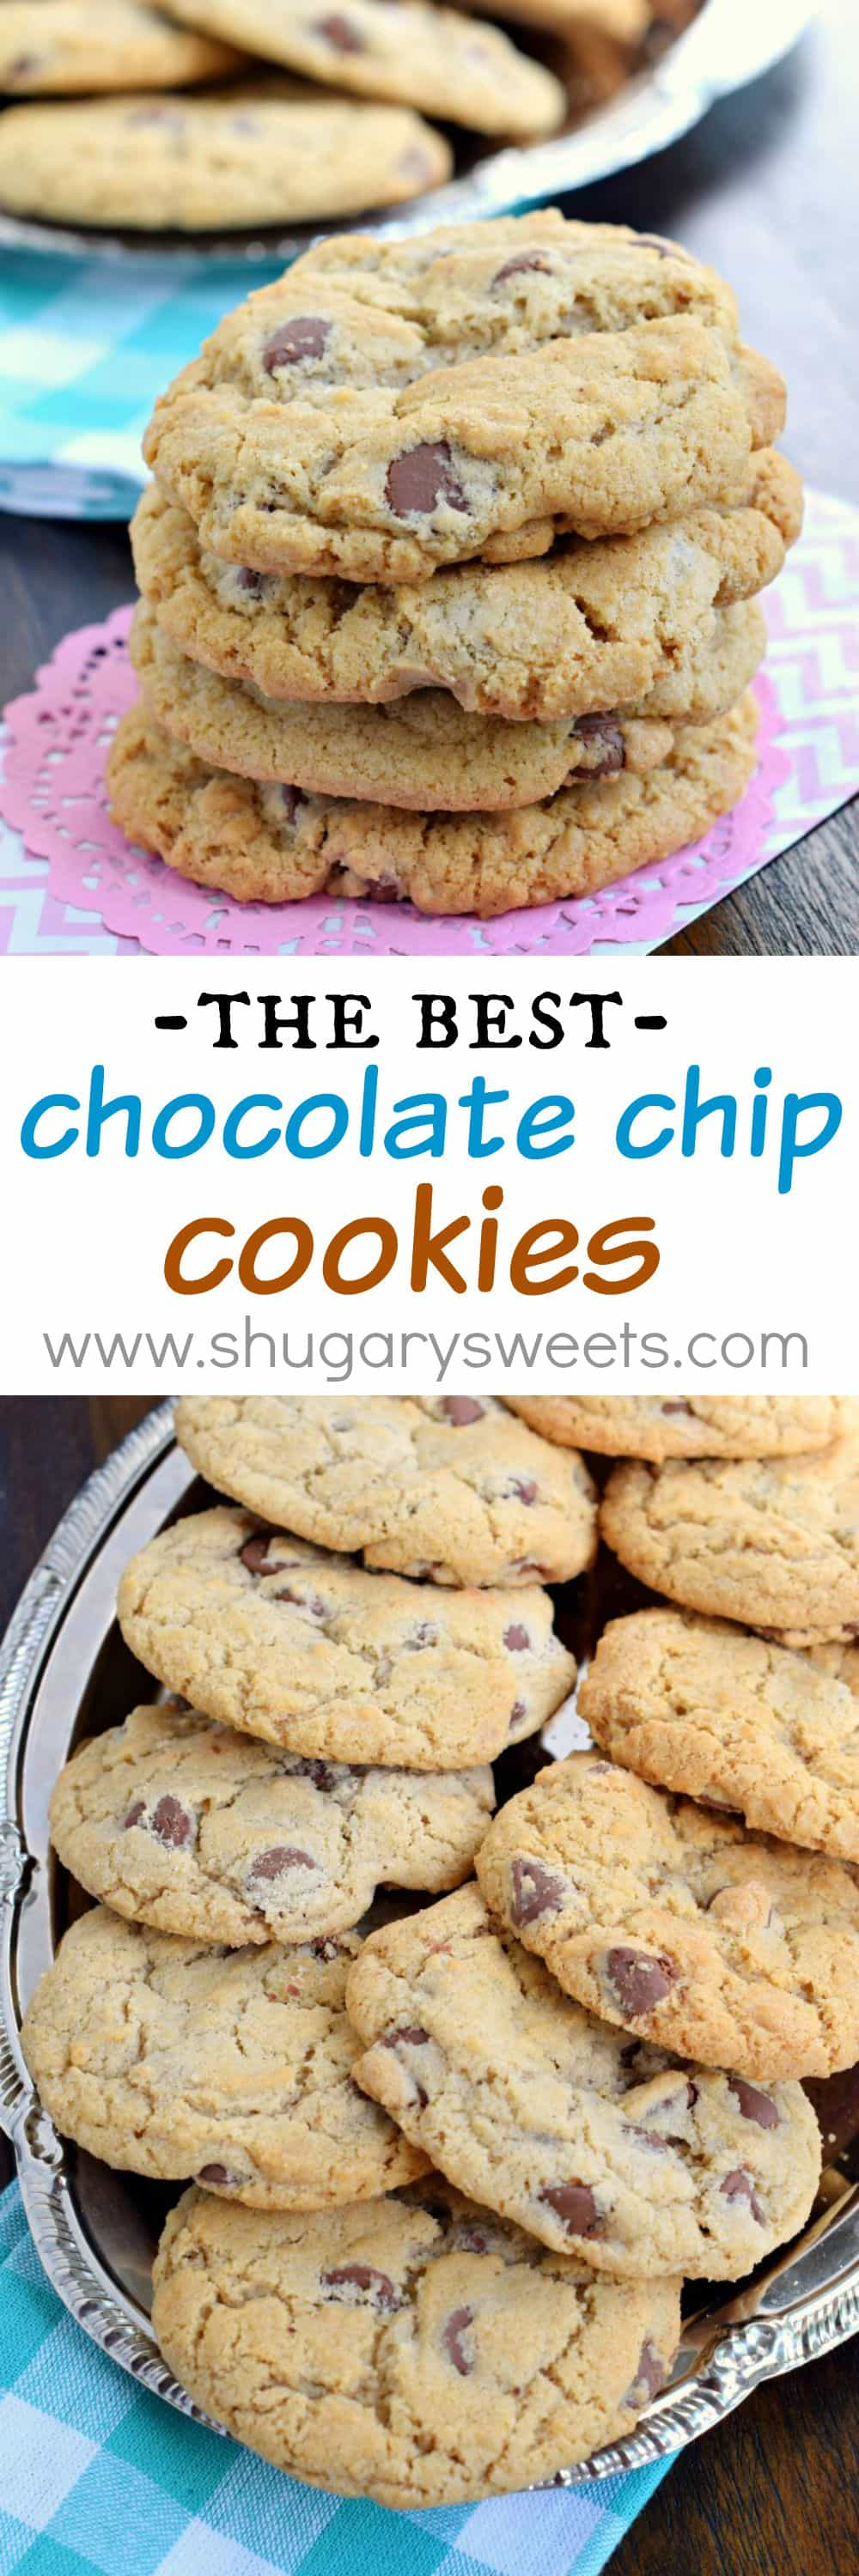 If you're looking for Perfect Chocolate Chip Cookies, this recipe is ...